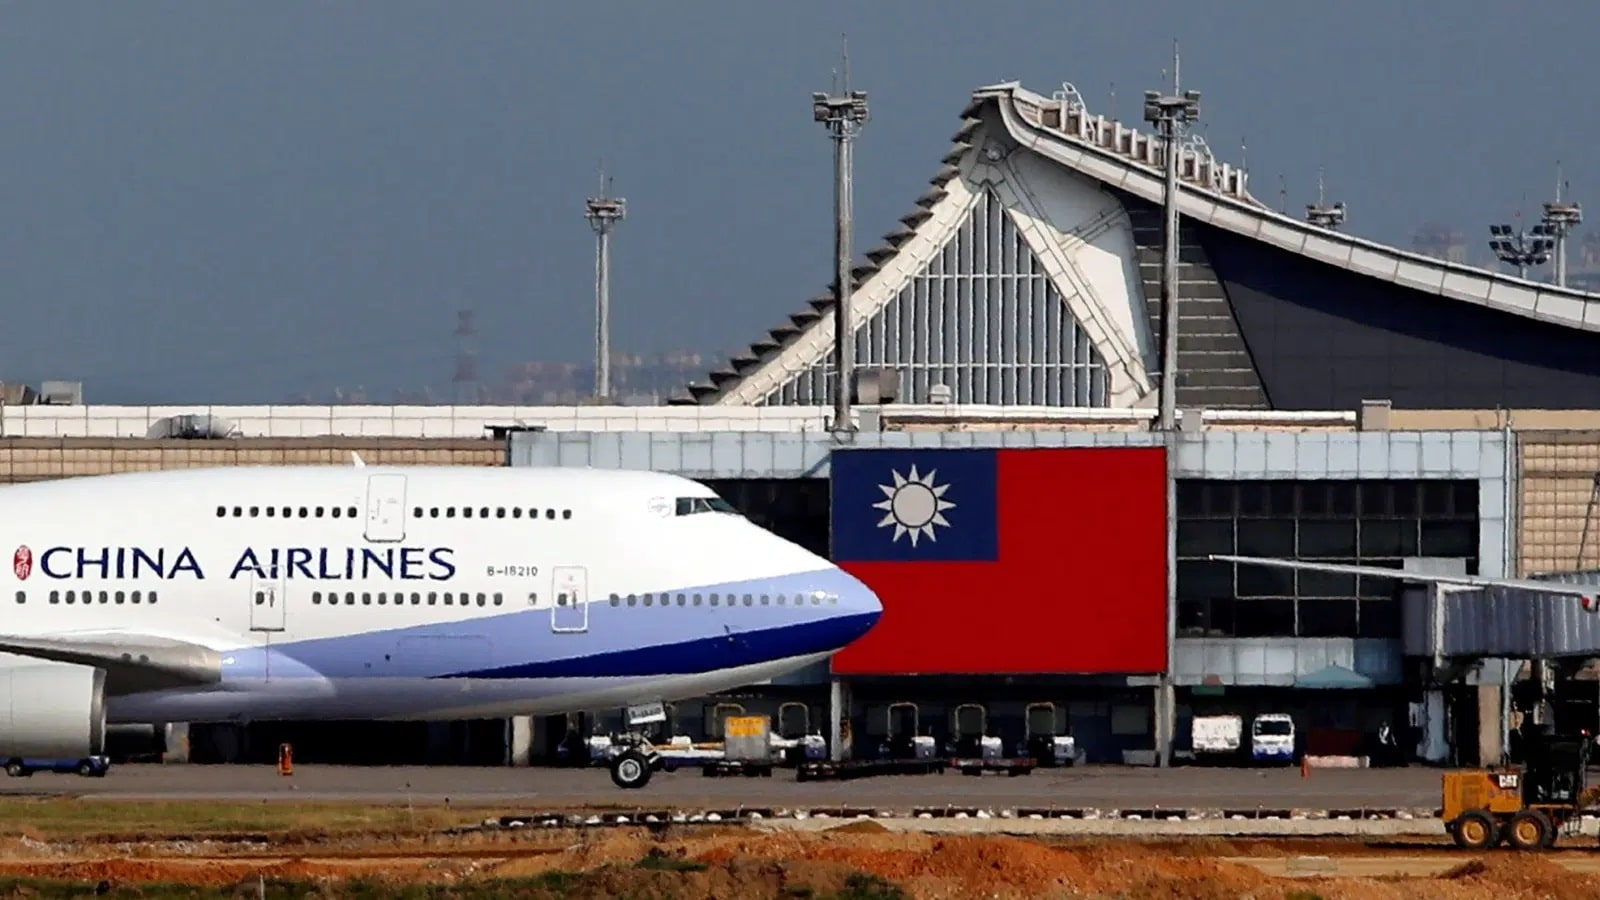 Taiwan Grounds China Airlines, Quarantines Pilots and Crew for 14 Days